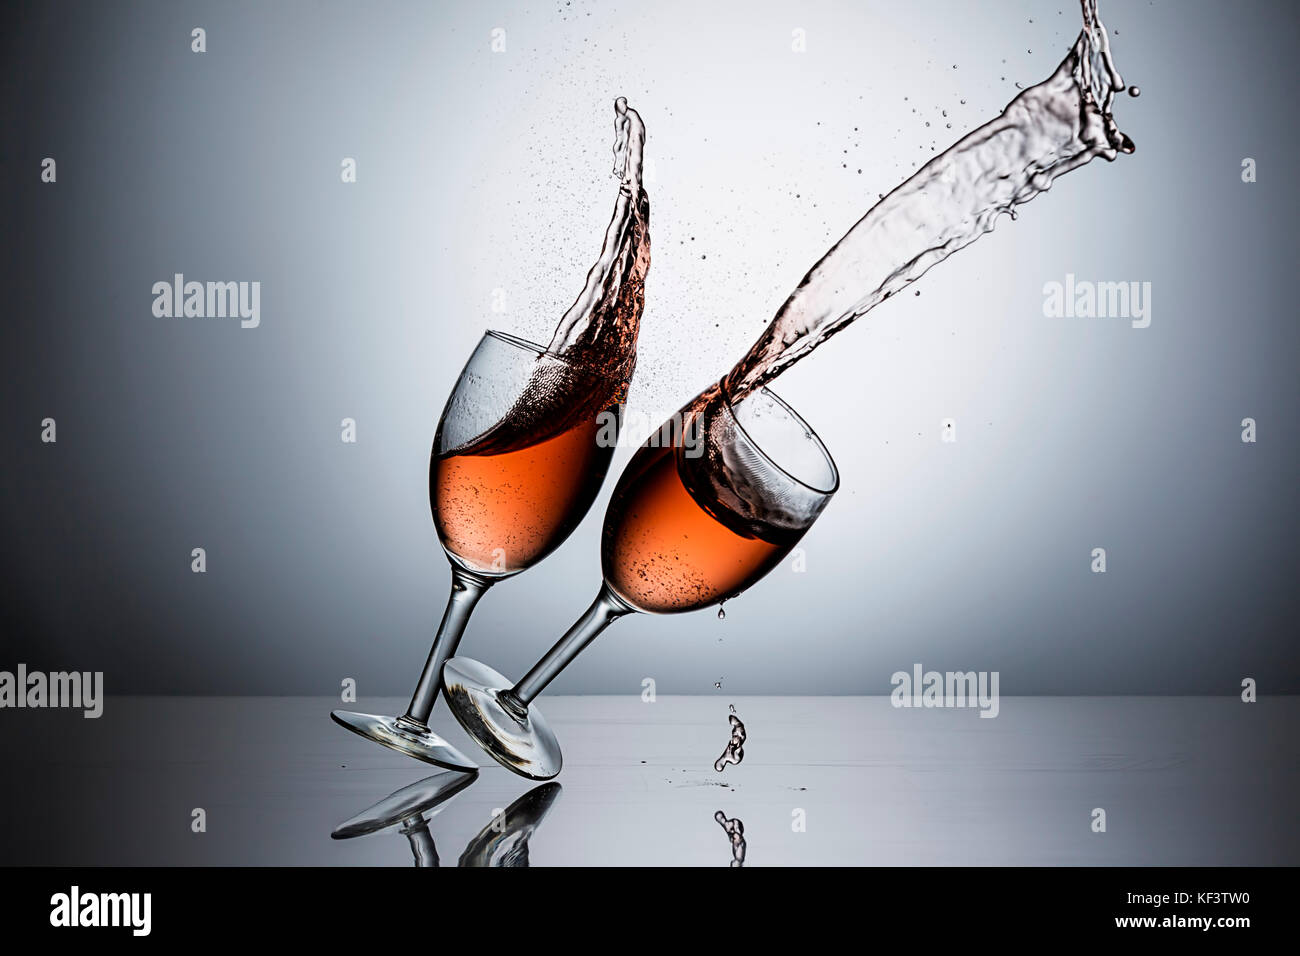 The movement of sliding one wine glass filled with wine into another one. - Stock Image